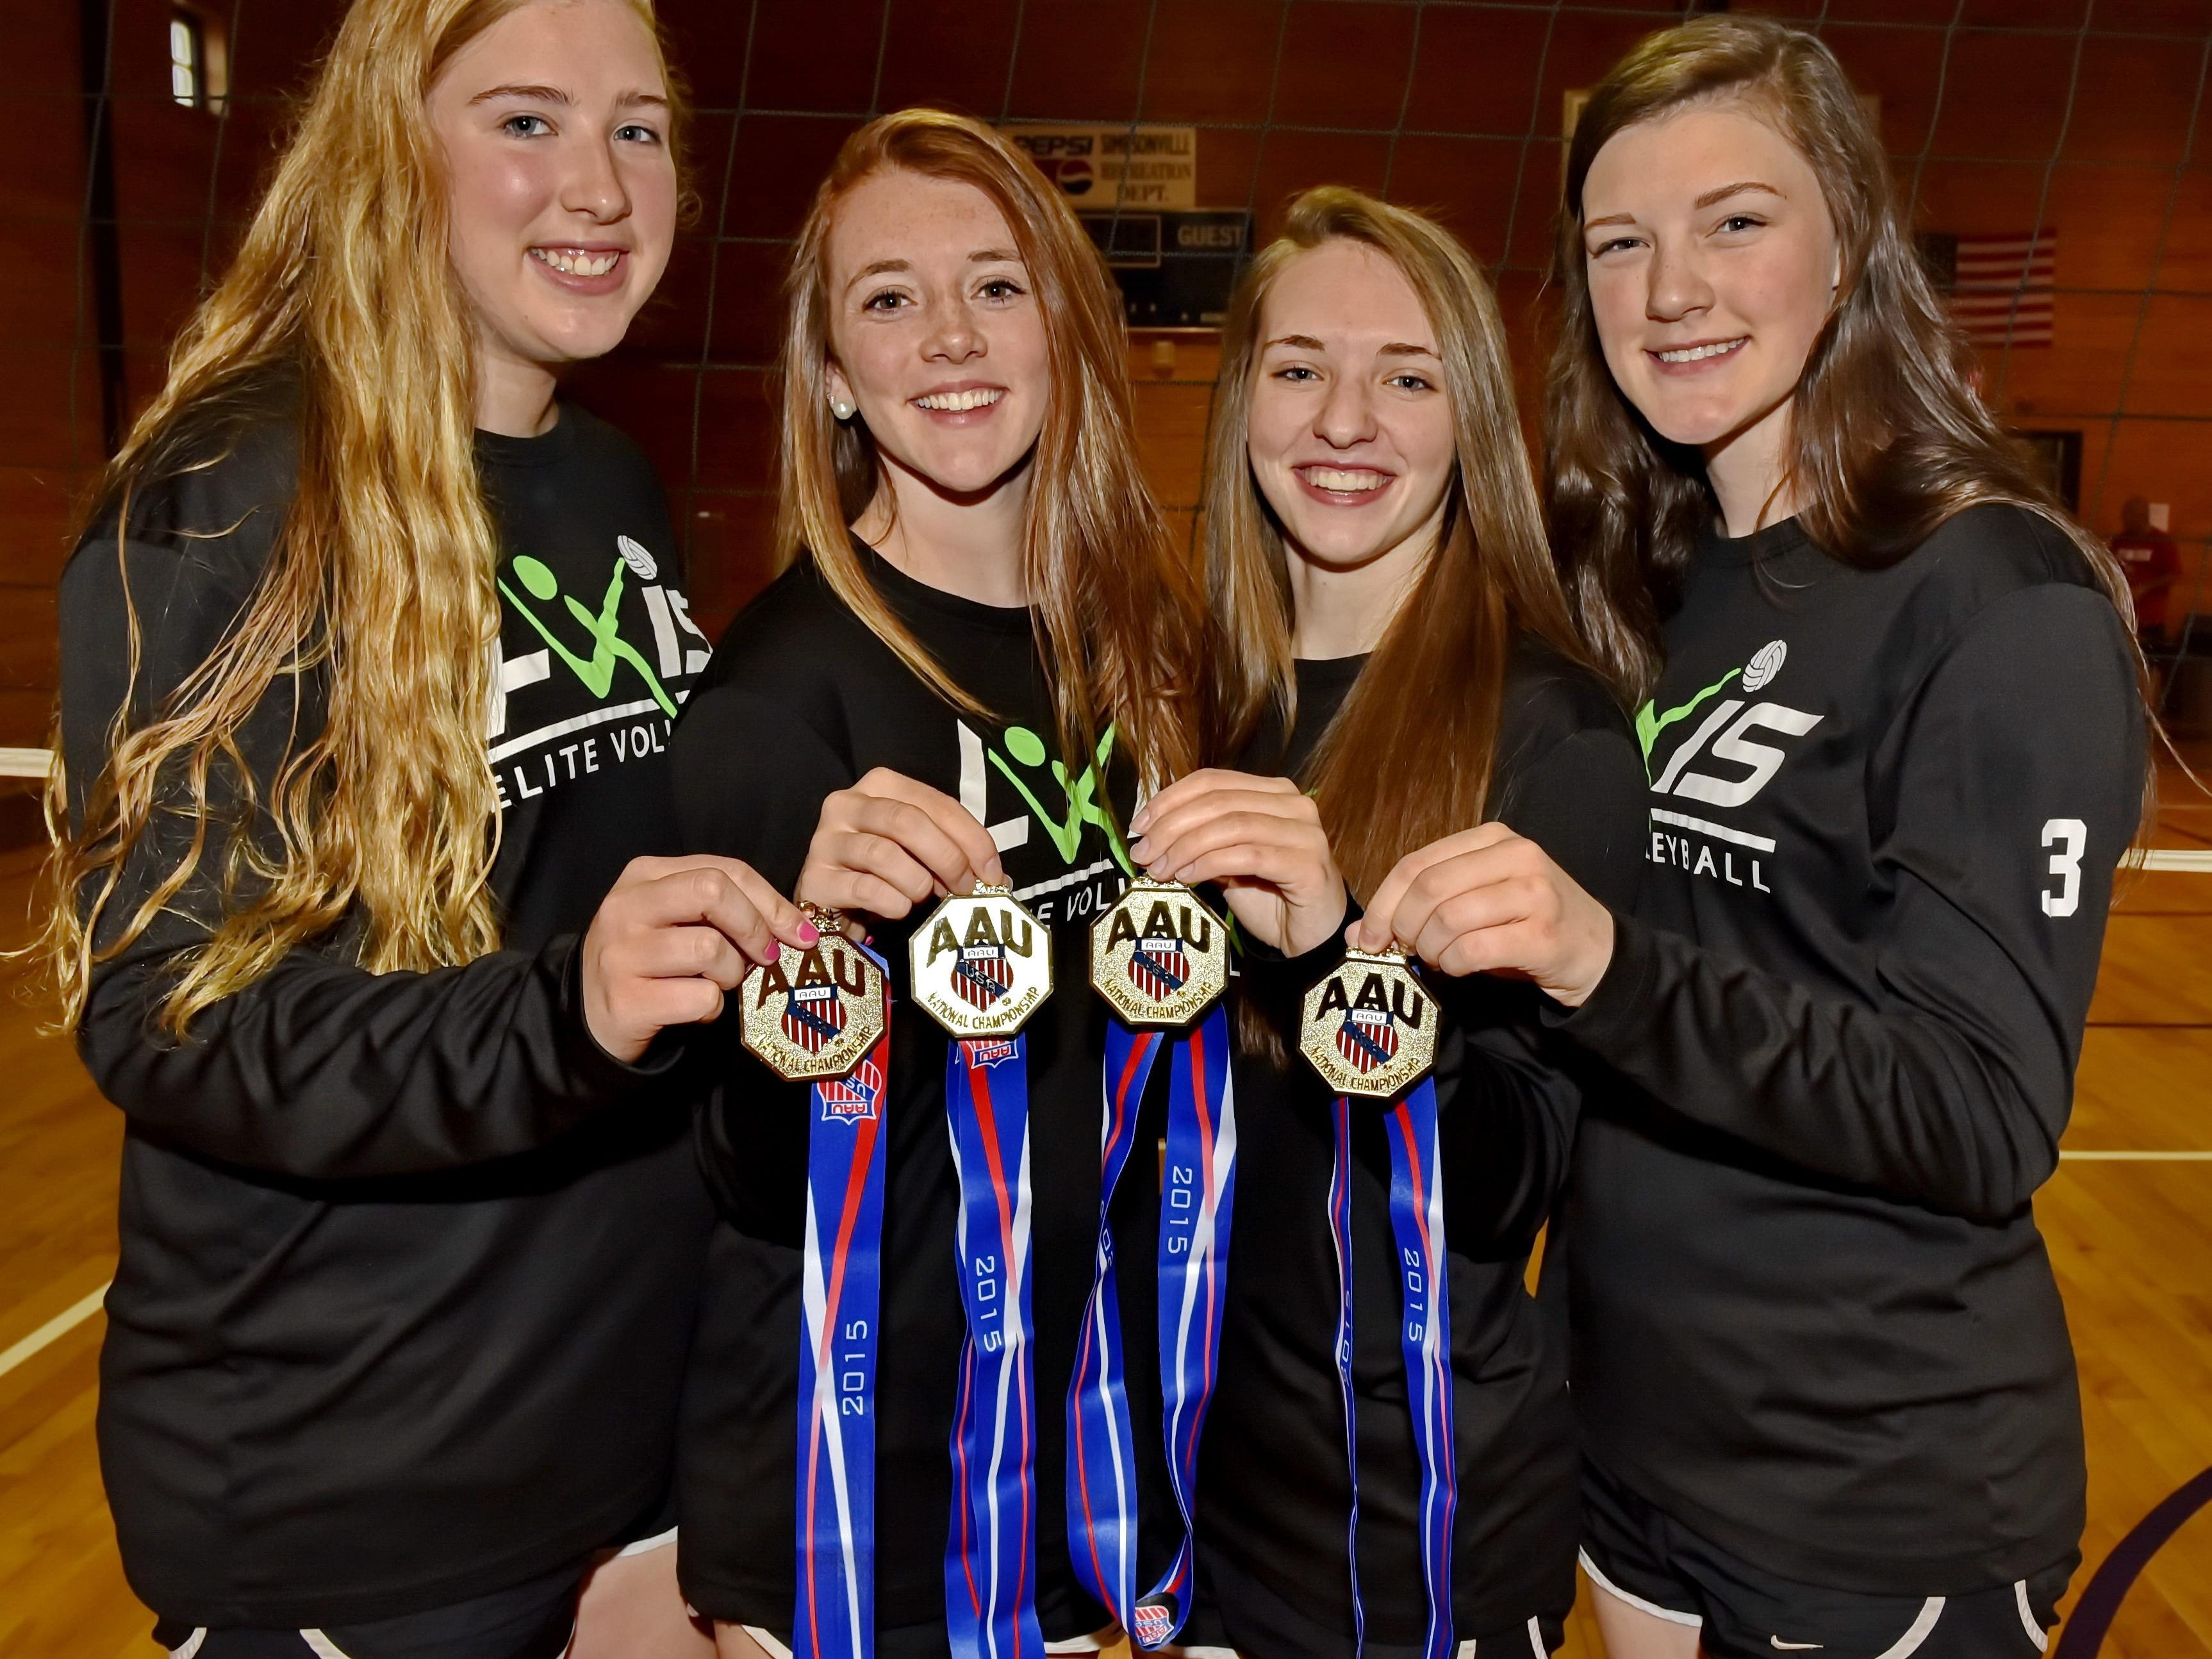 From left, Allie Wright, Christina Ellwanger, Kaely Thompson and Allison Whitten served as captains on the Simpsonville-based Axis 16 Rox team that won the AAU National Junior Volleyball Championship in the 16 Premier Division June 26 in Orlando, Florida.